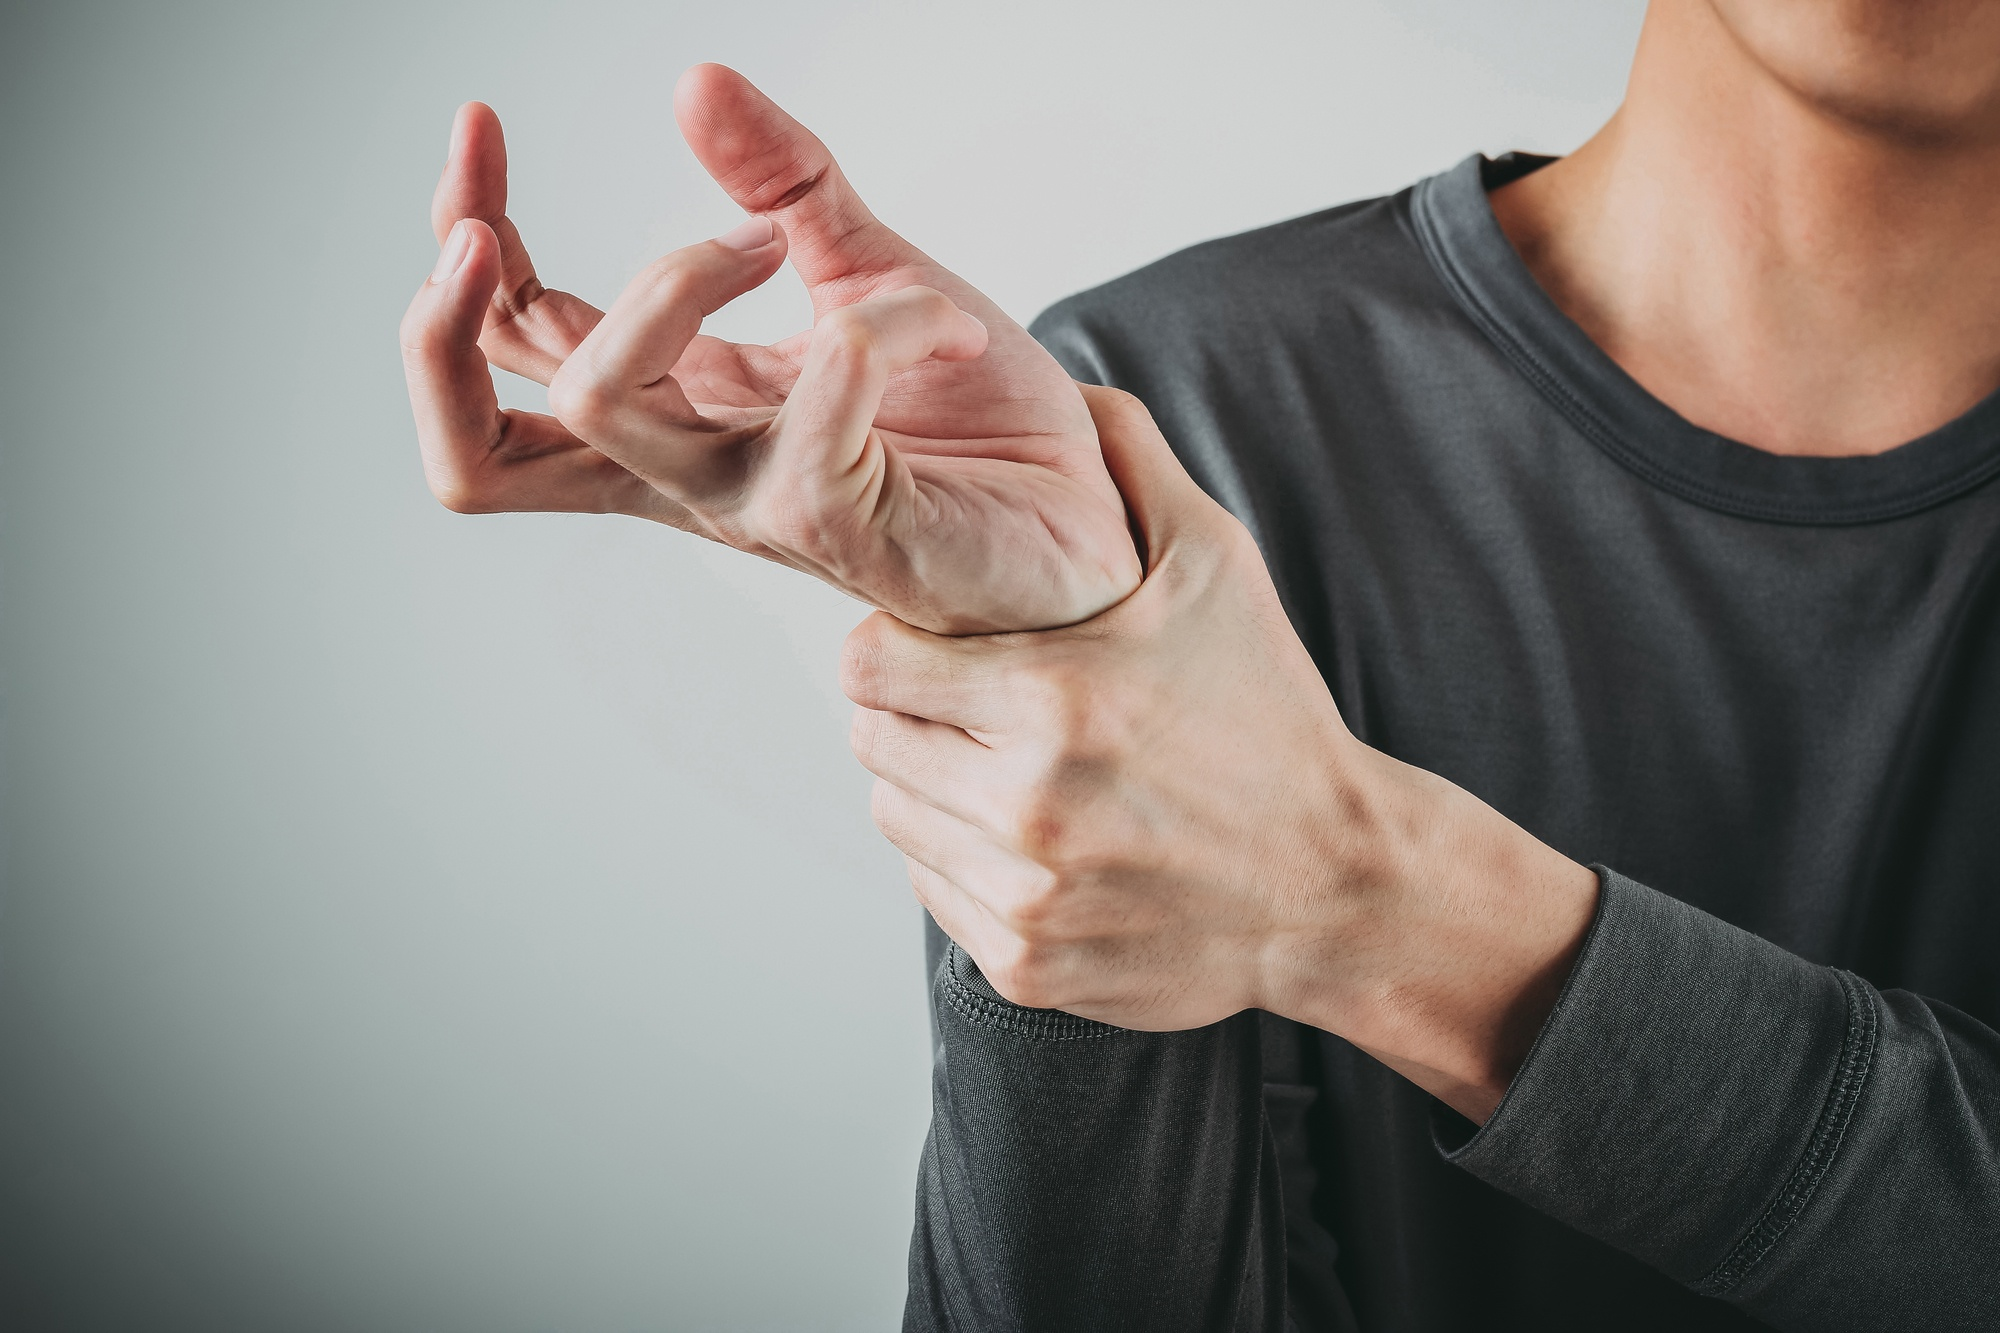 man wrist pain carpal tunnel syndrome orthopedic pain care treatment PRP therapy .jpg